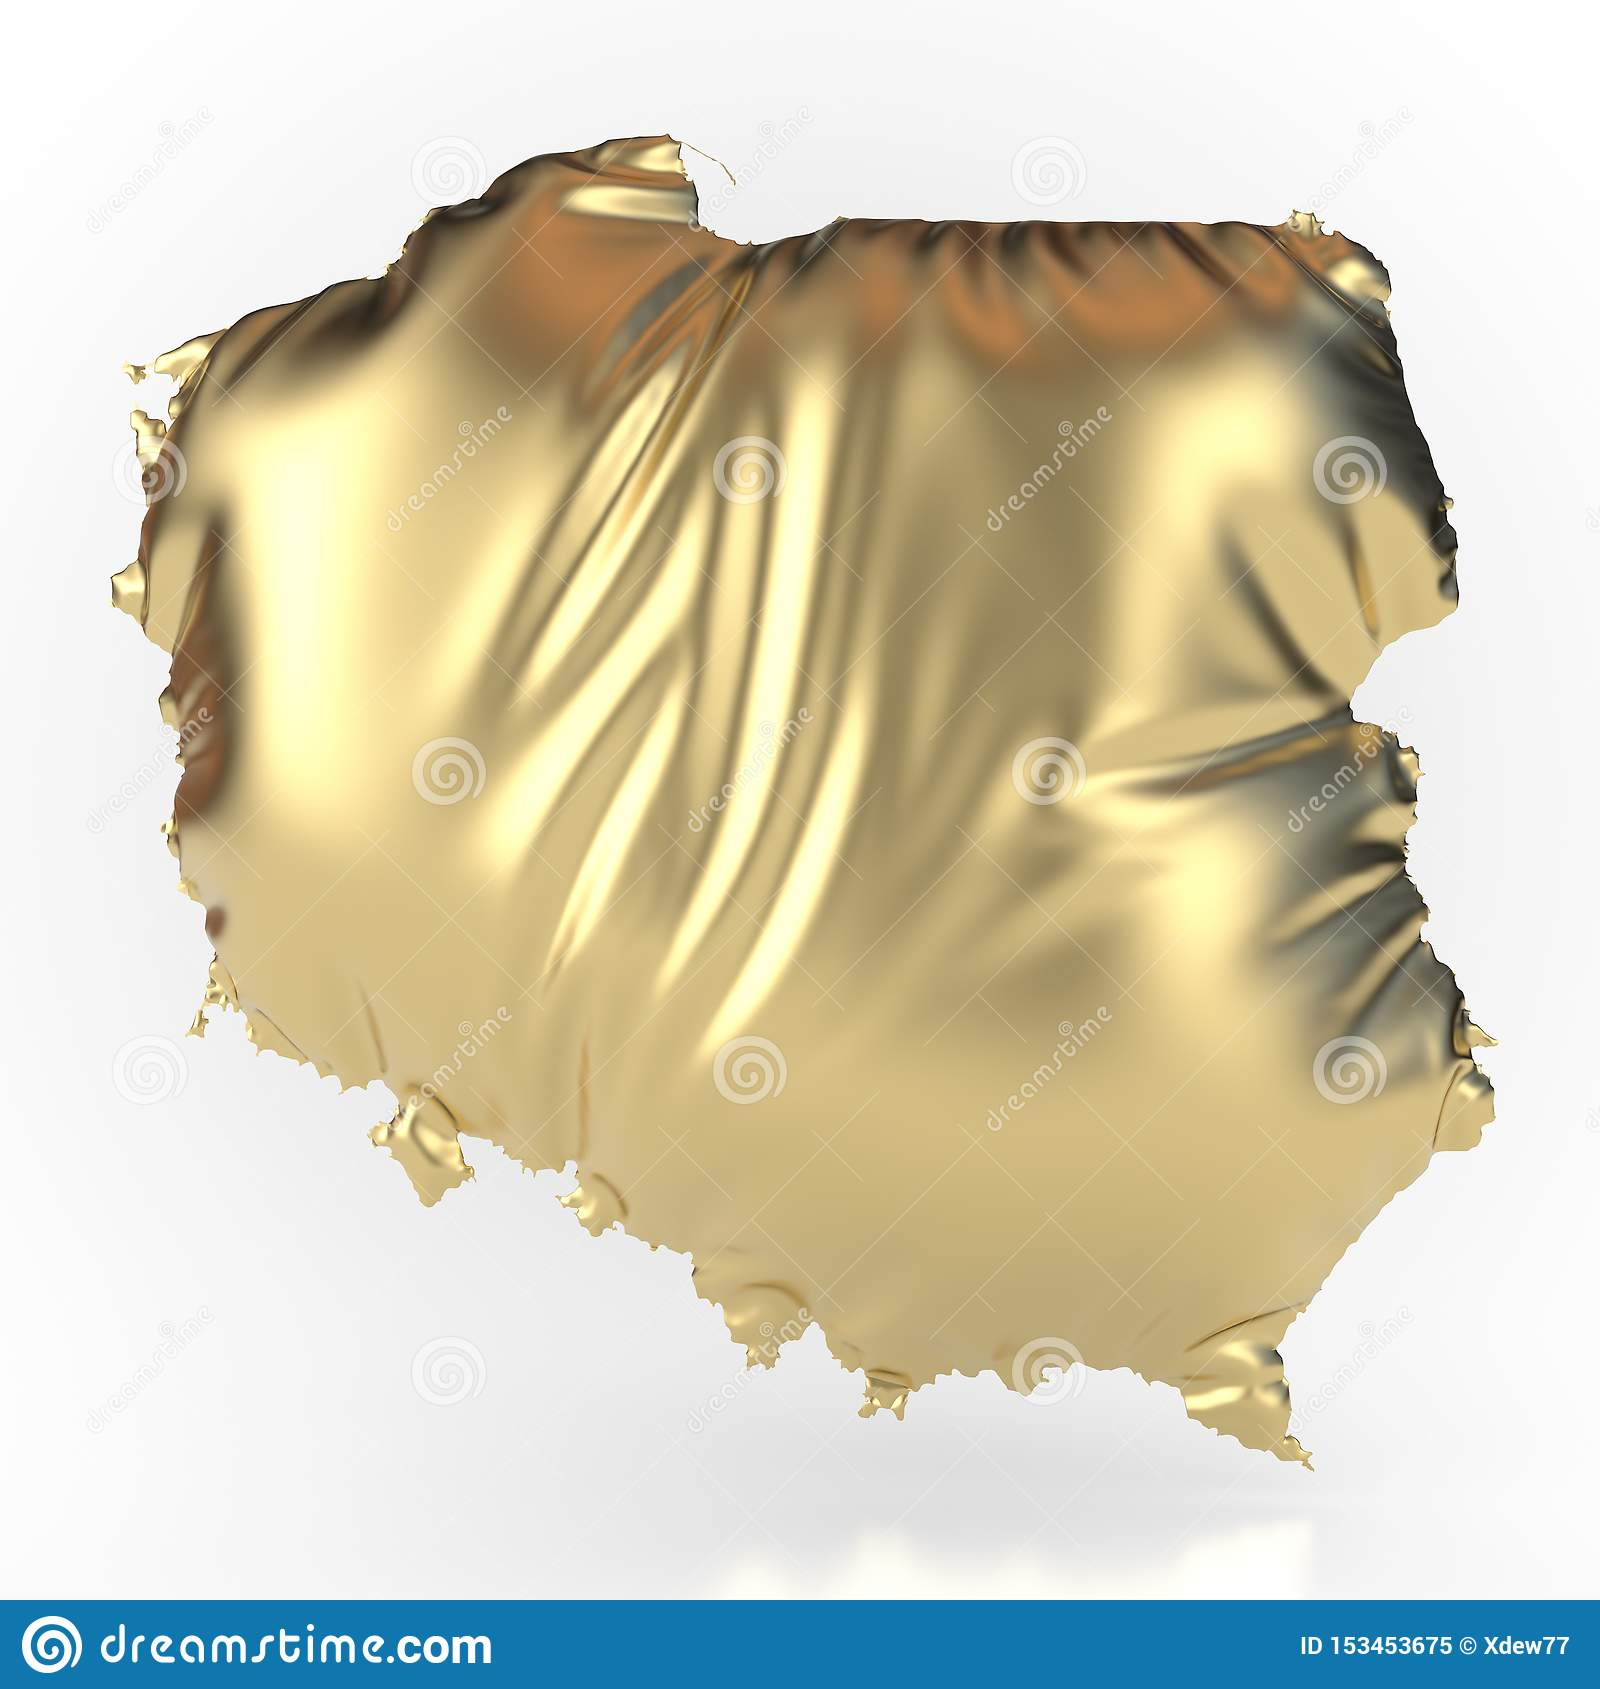 Poland gold-colored and inflated